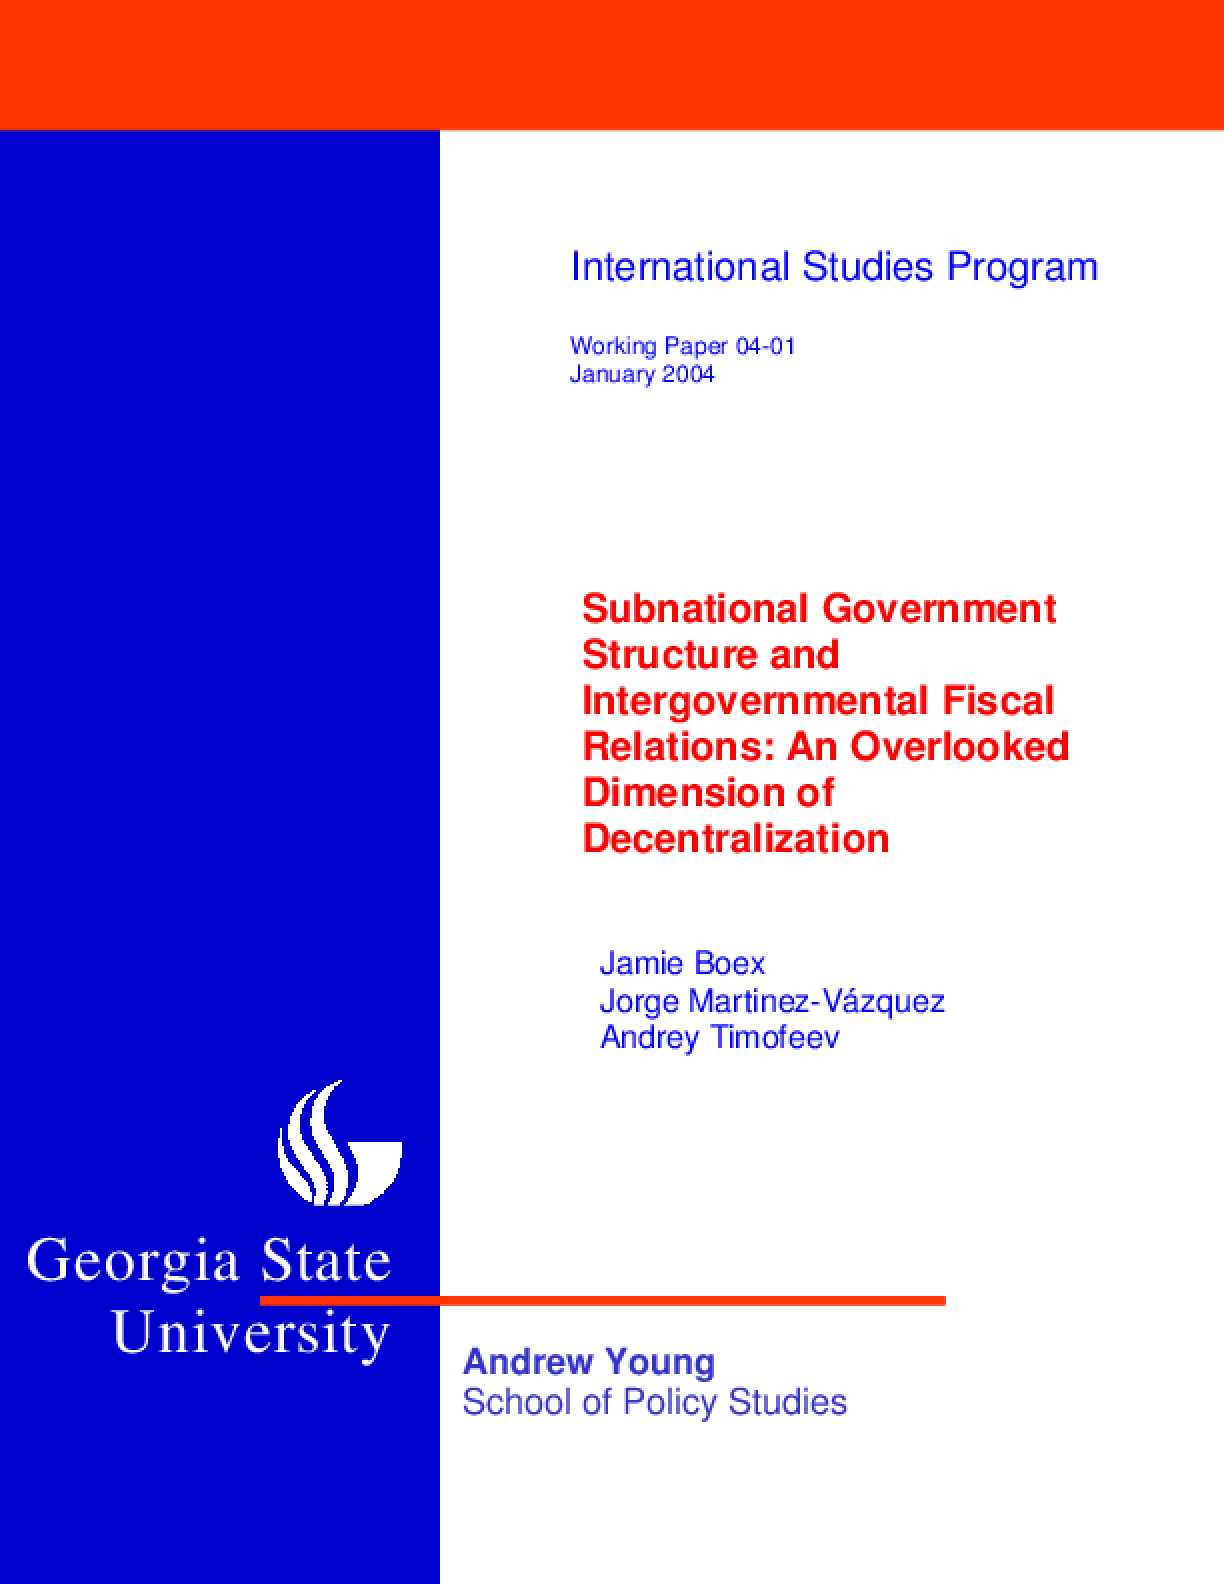 Subnational Government Structure and Intergovernmental Fiscal Relations: An Overlooked Dimension of Decentralization